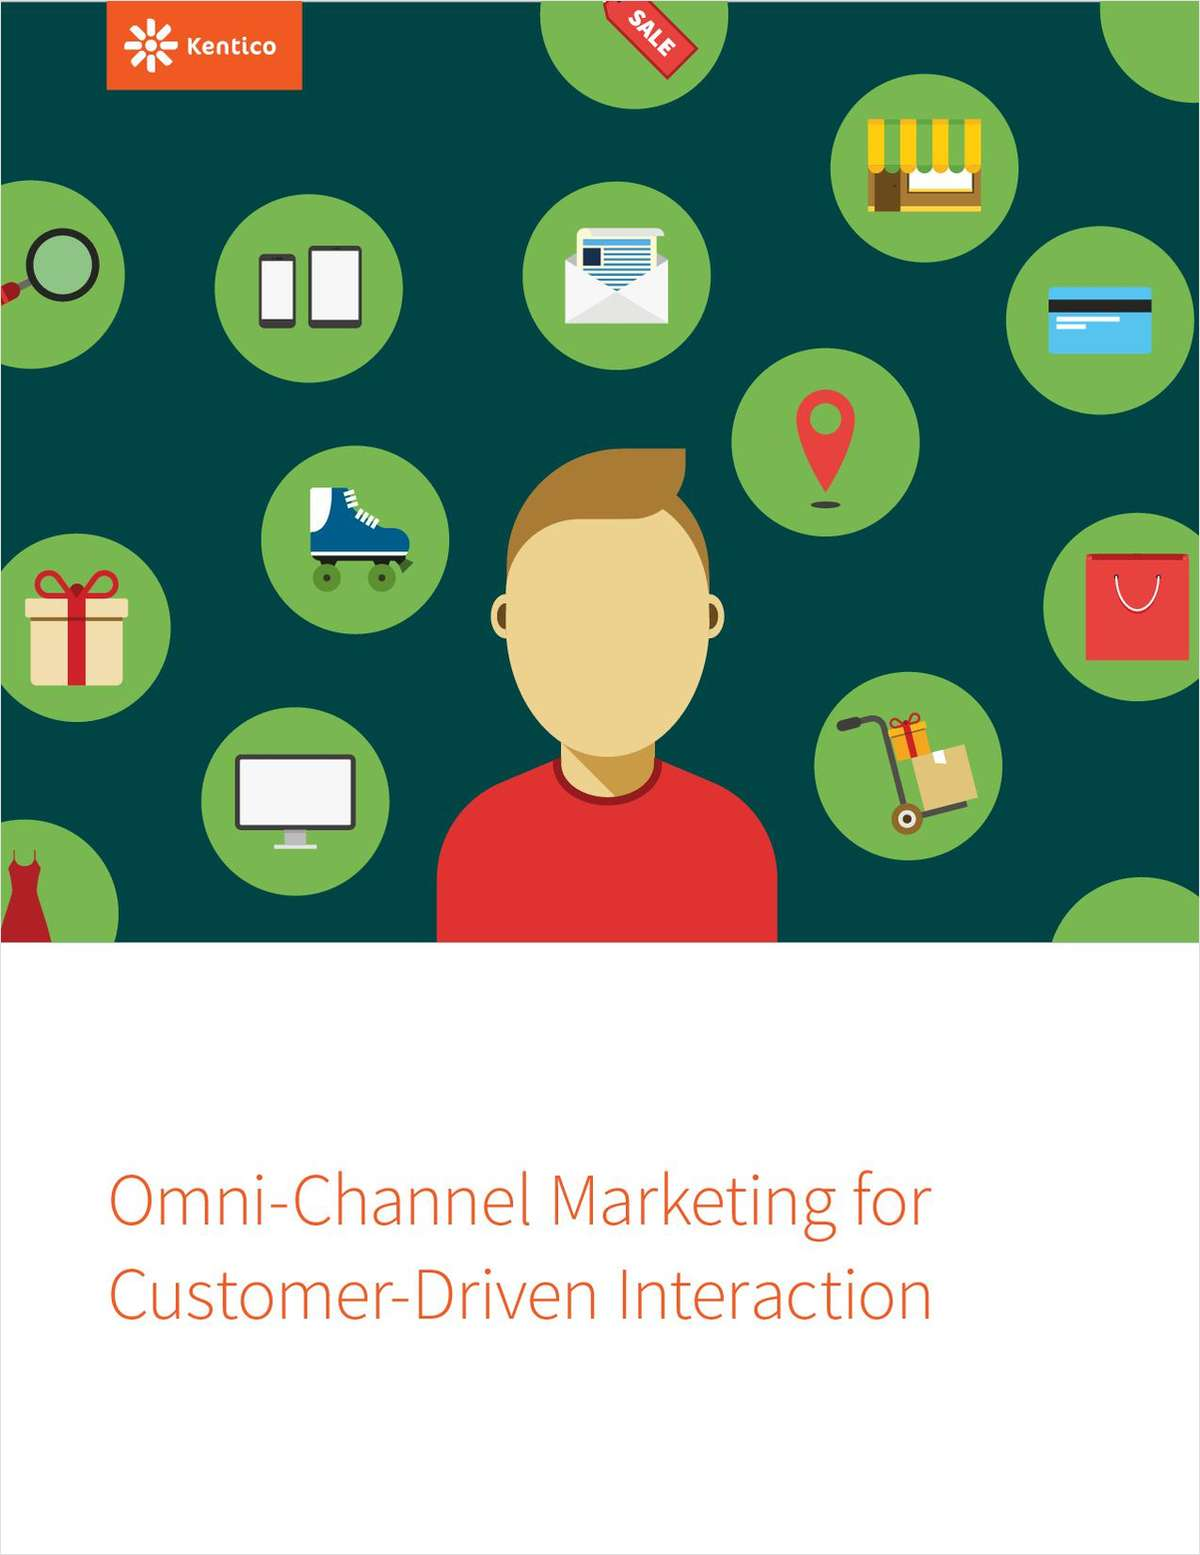 Affordable Omni Channel Marketing With Kentico